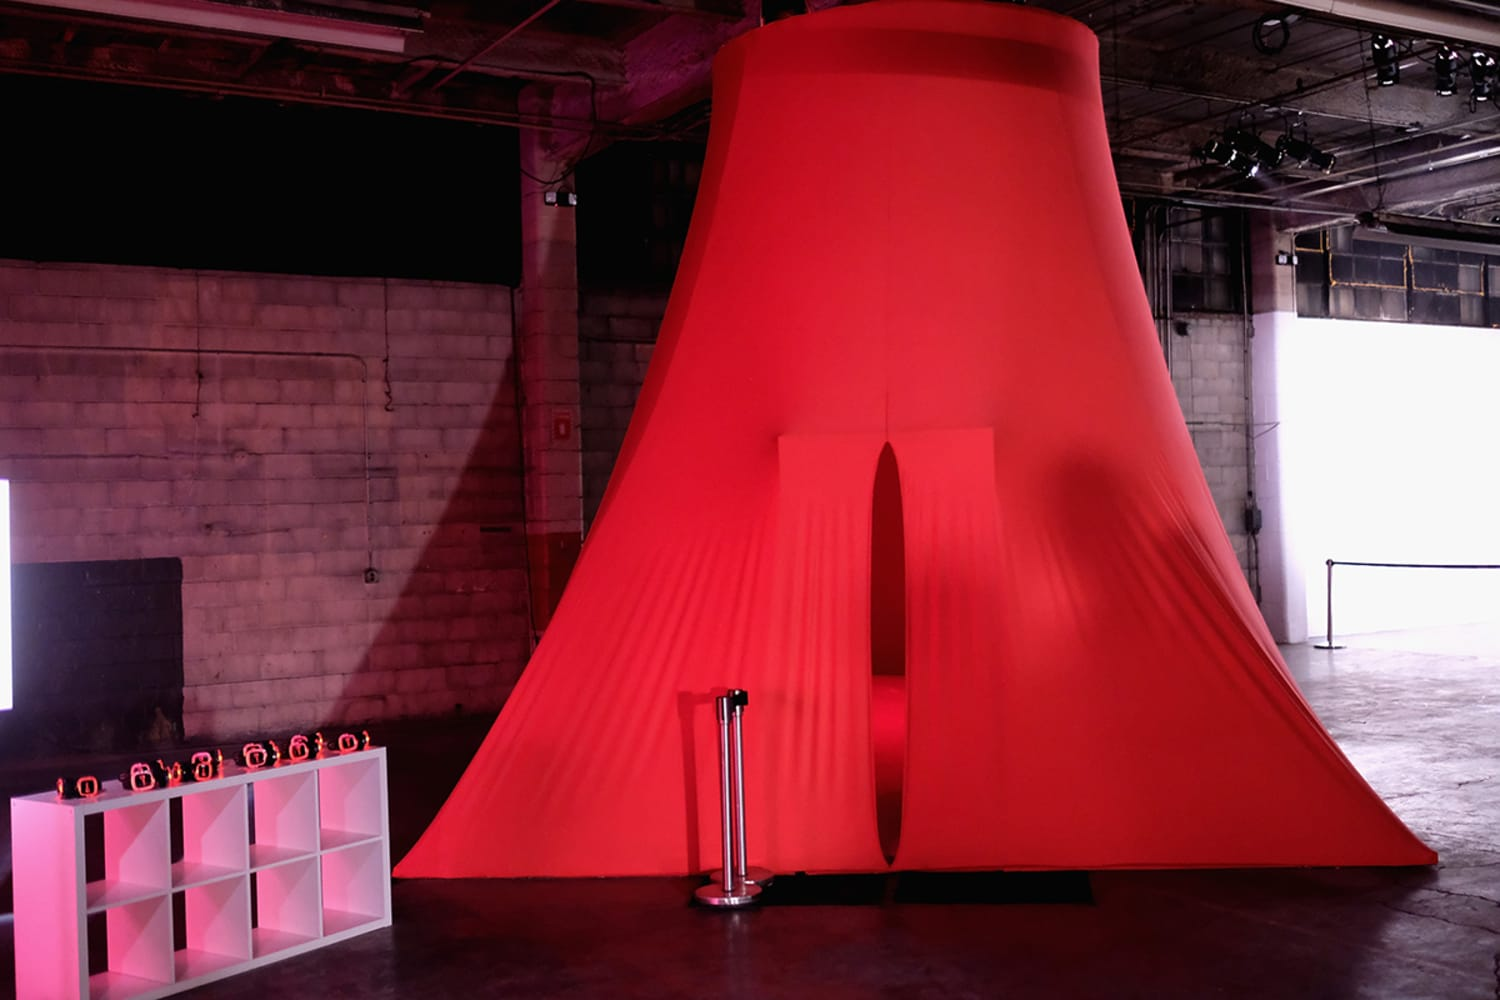 The Womb by Cleo Wadeat Refinery29 Third Annual 29 Rooms Turn It Into Art Press Preview